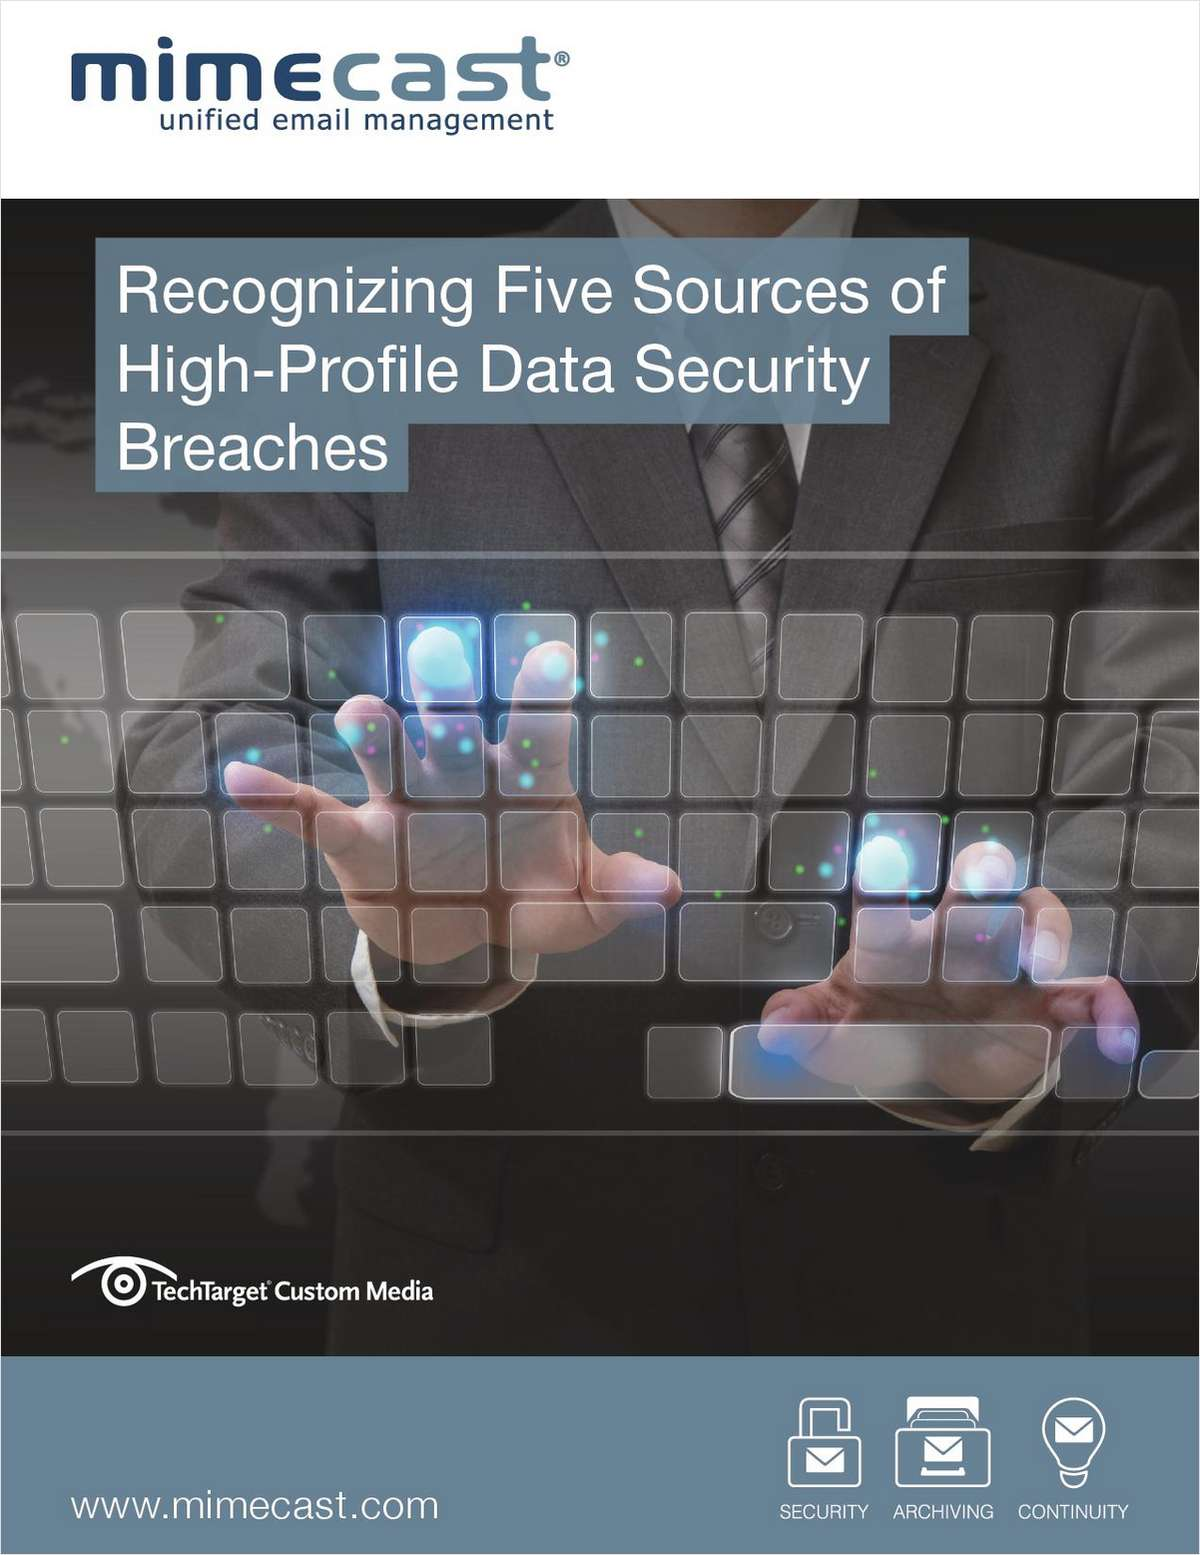 Recognizing Five Sources of High-Profile Data Security Breaches